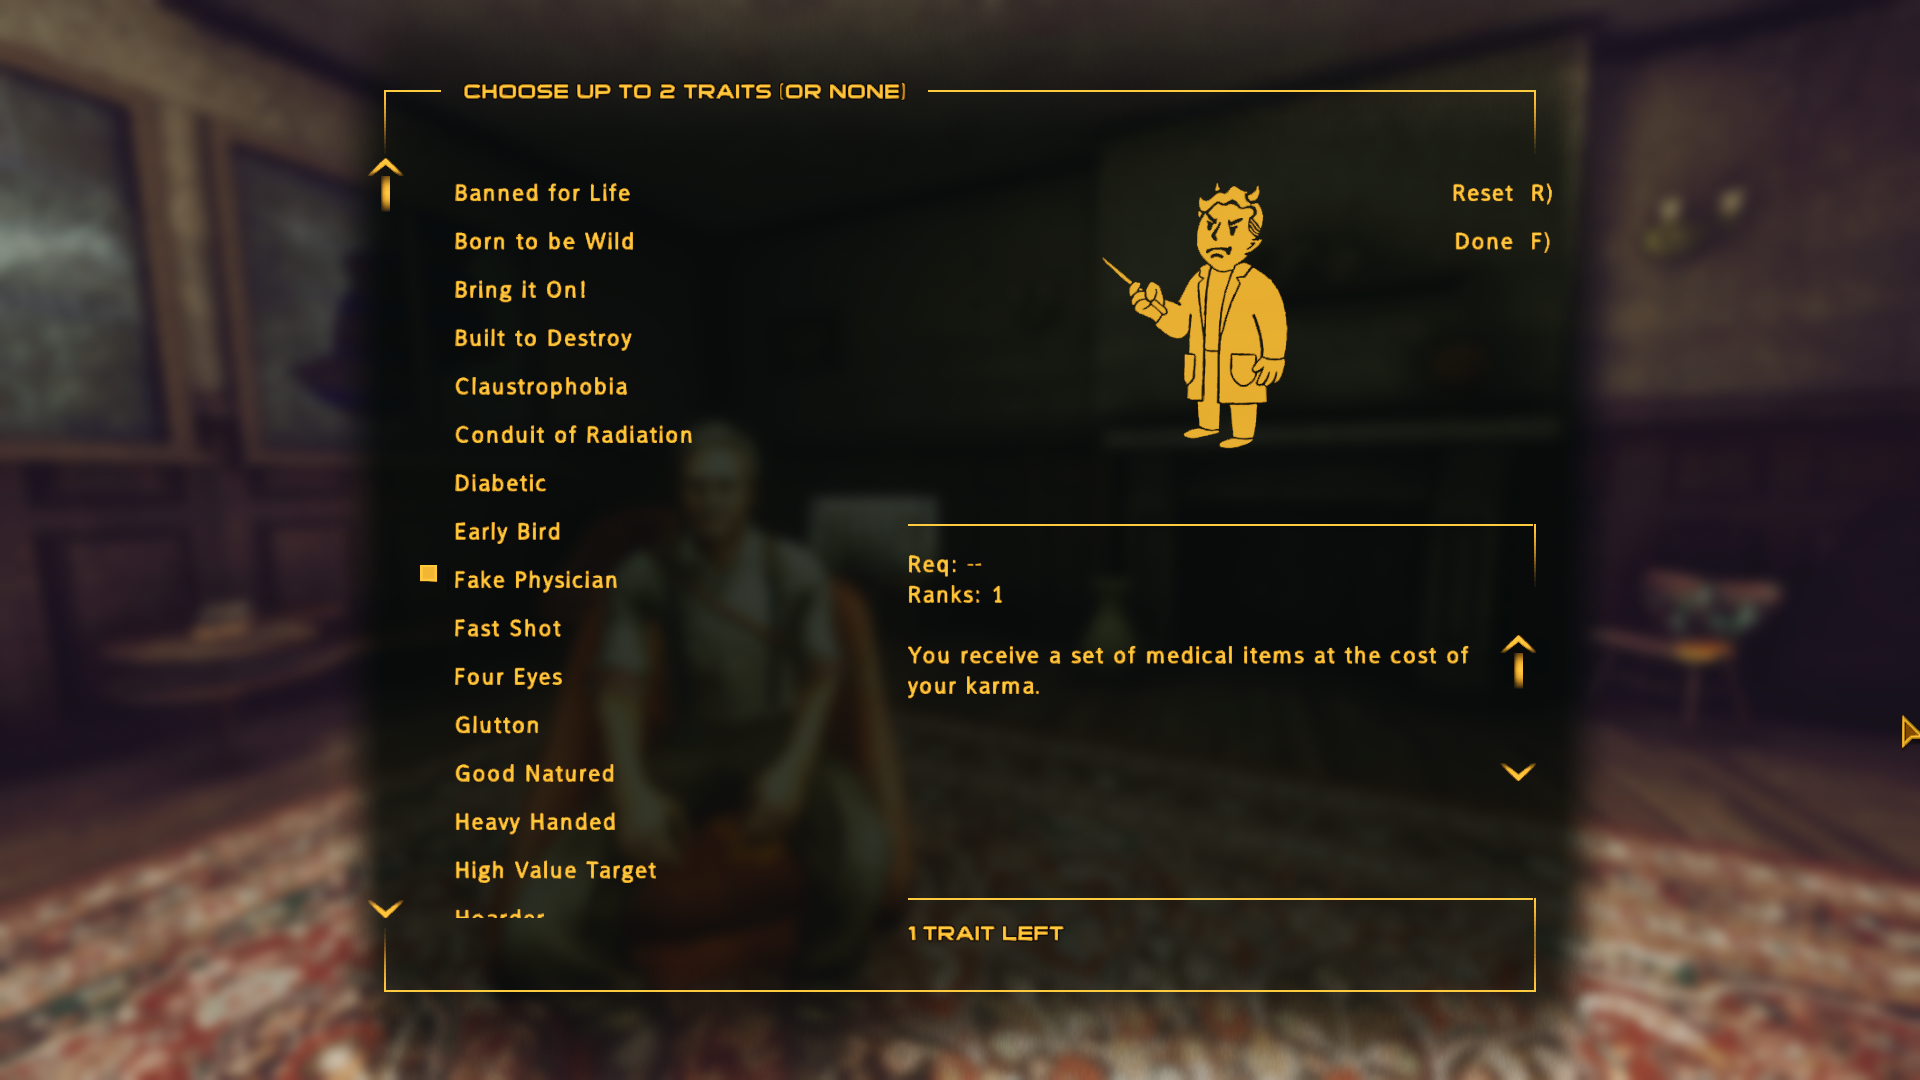 New Vegas New Year - 2019 Community Playthrough - Page 3 B2kTNuTE_o